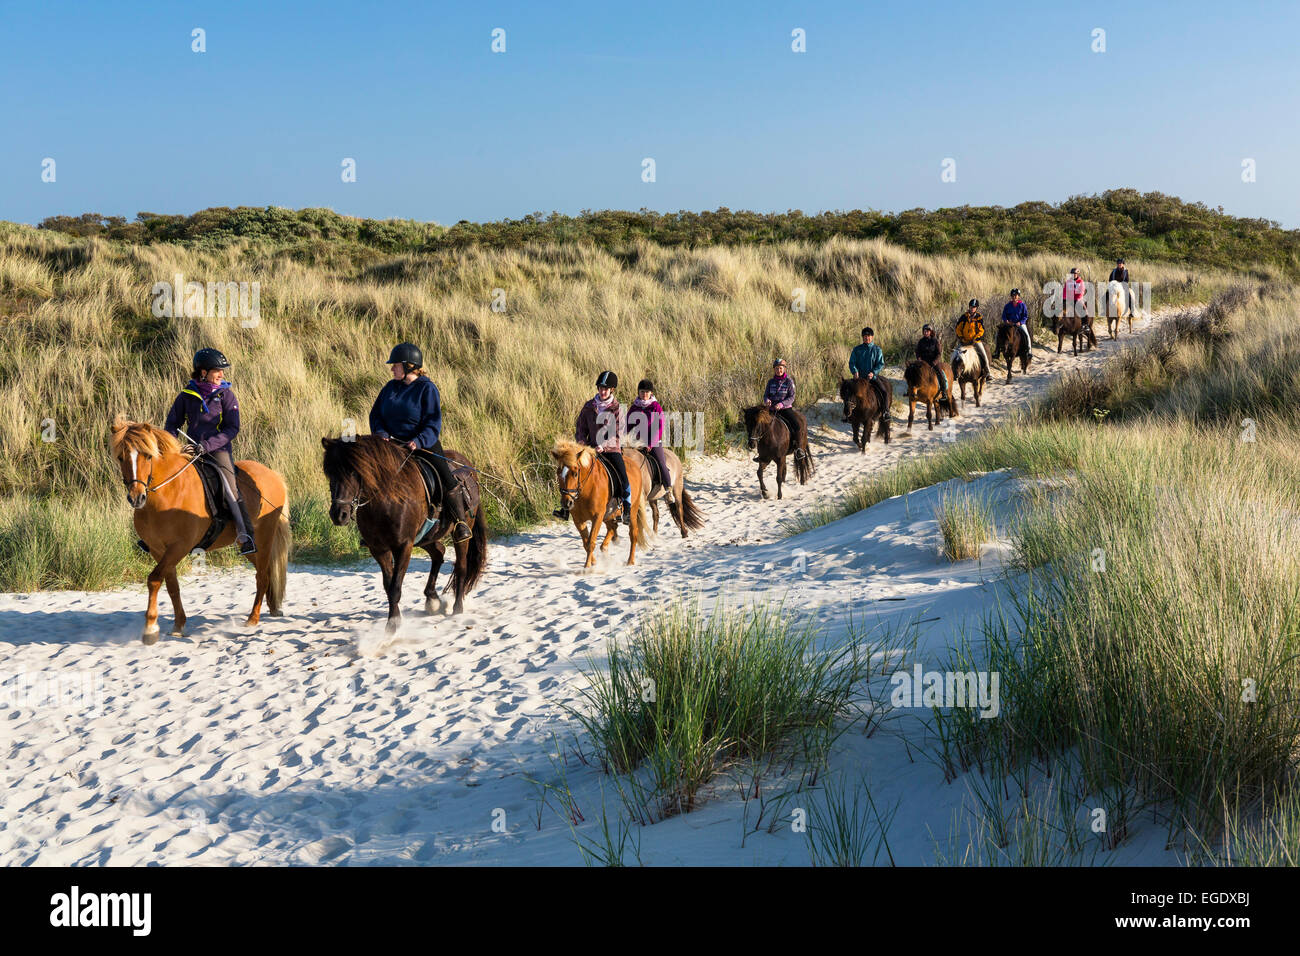 Horse riding in the dunes of Spiekeroog Island, Nationalpark, North Sea, East Frisian Islands, East Frisia, Lower - Stock Image